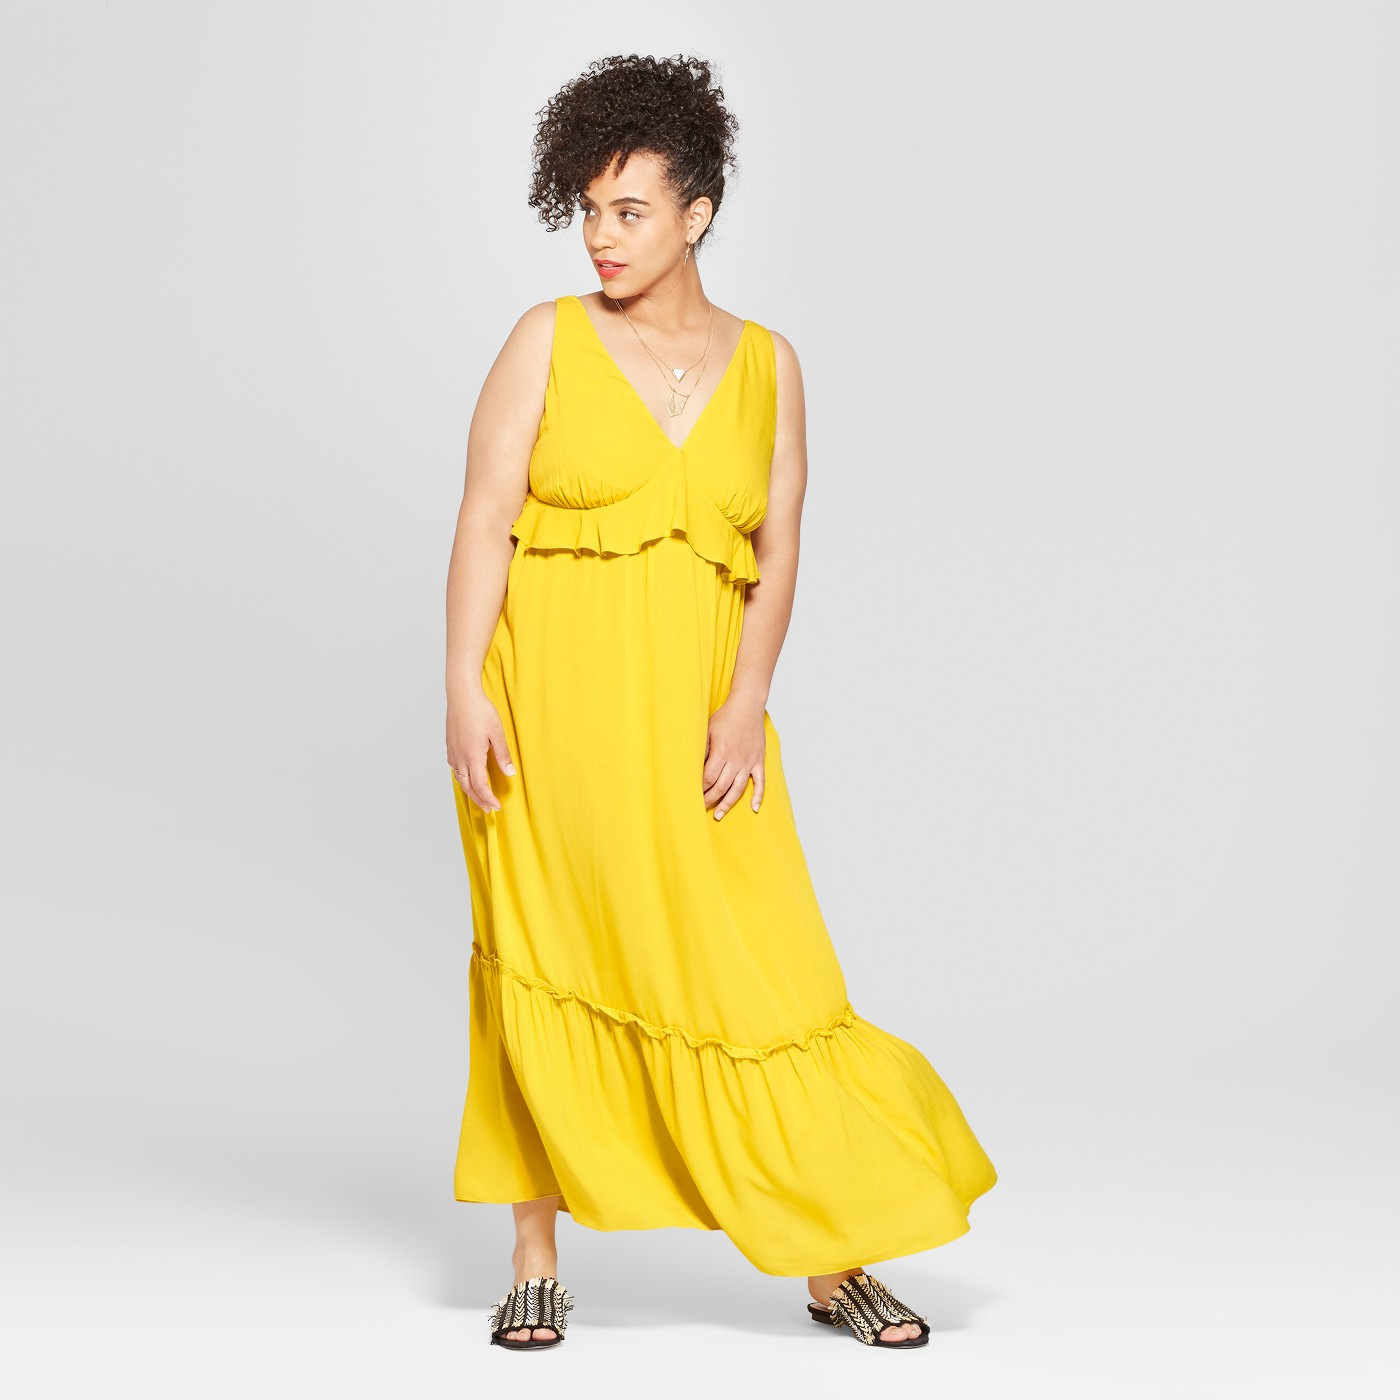 New Summer Plus Size Styles From Who What Wear Target ...